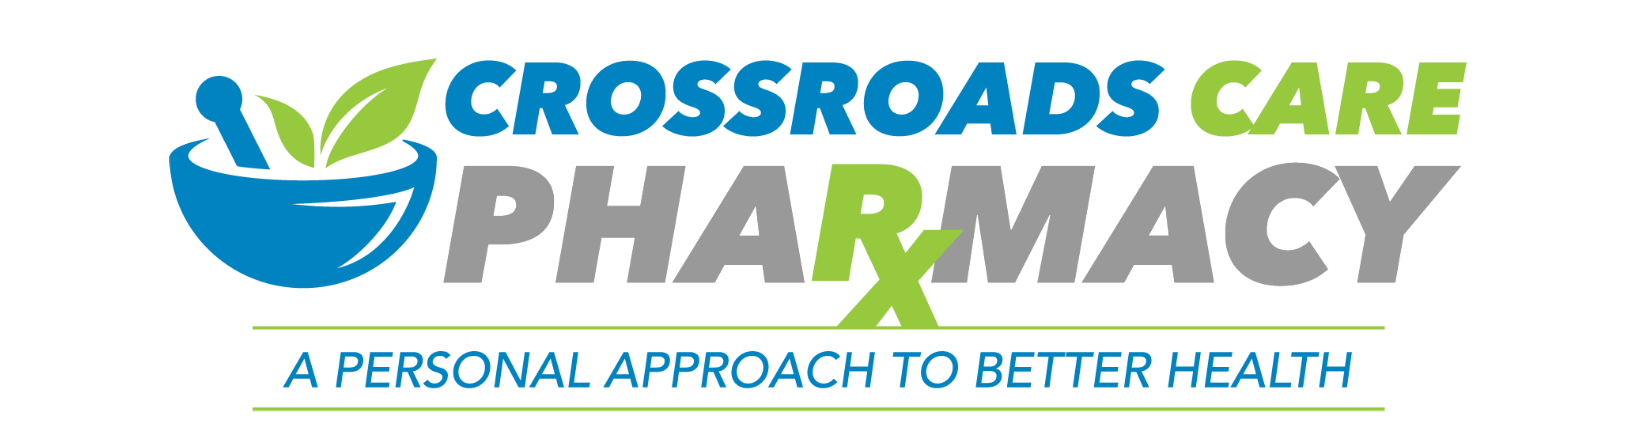 Crossroads Care Pharmacy